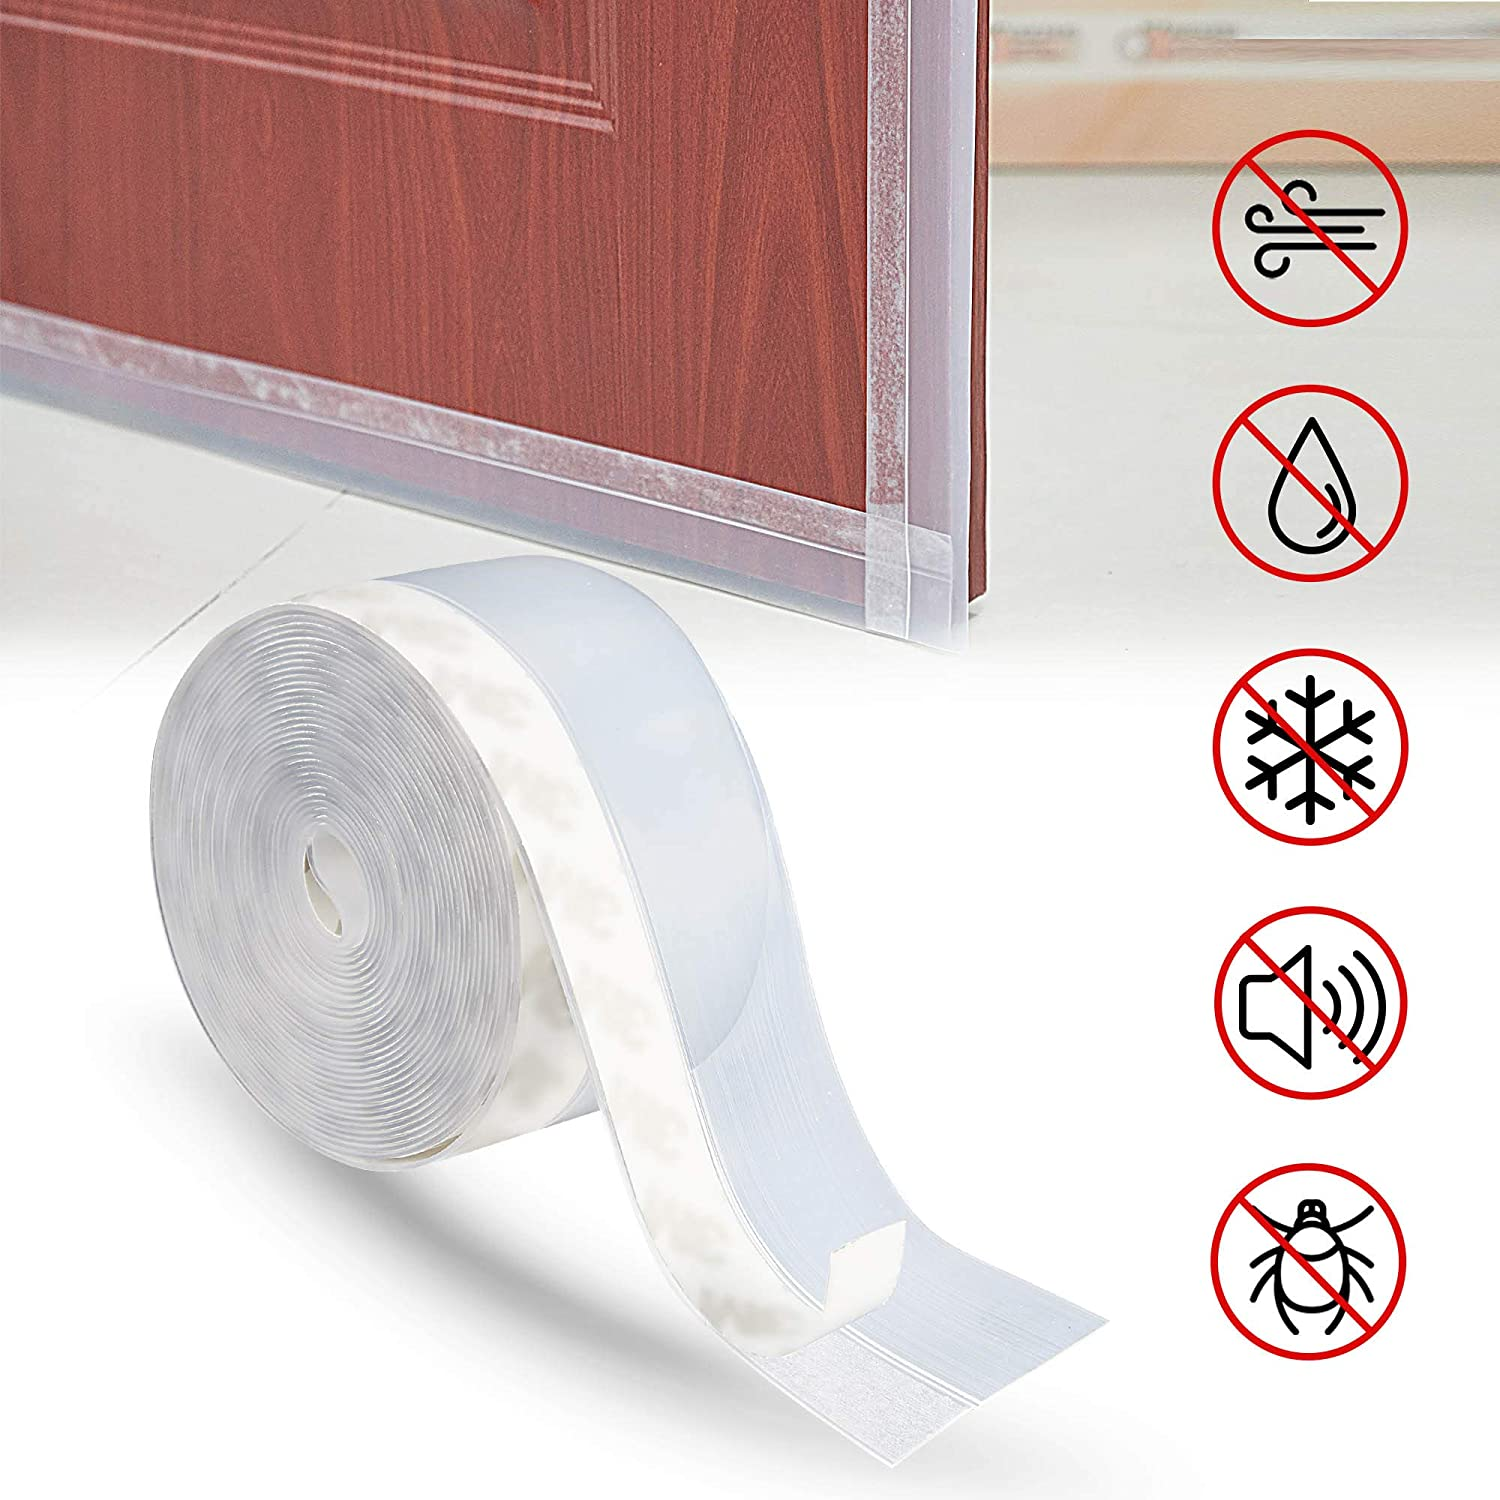 TOMALL Door Weather Stripping Bottom/Side,Silicone Seal Strip,Weather Stripping Door Seal Strip,Door Draft Stopper Clear (45MM x 16.4 FT)